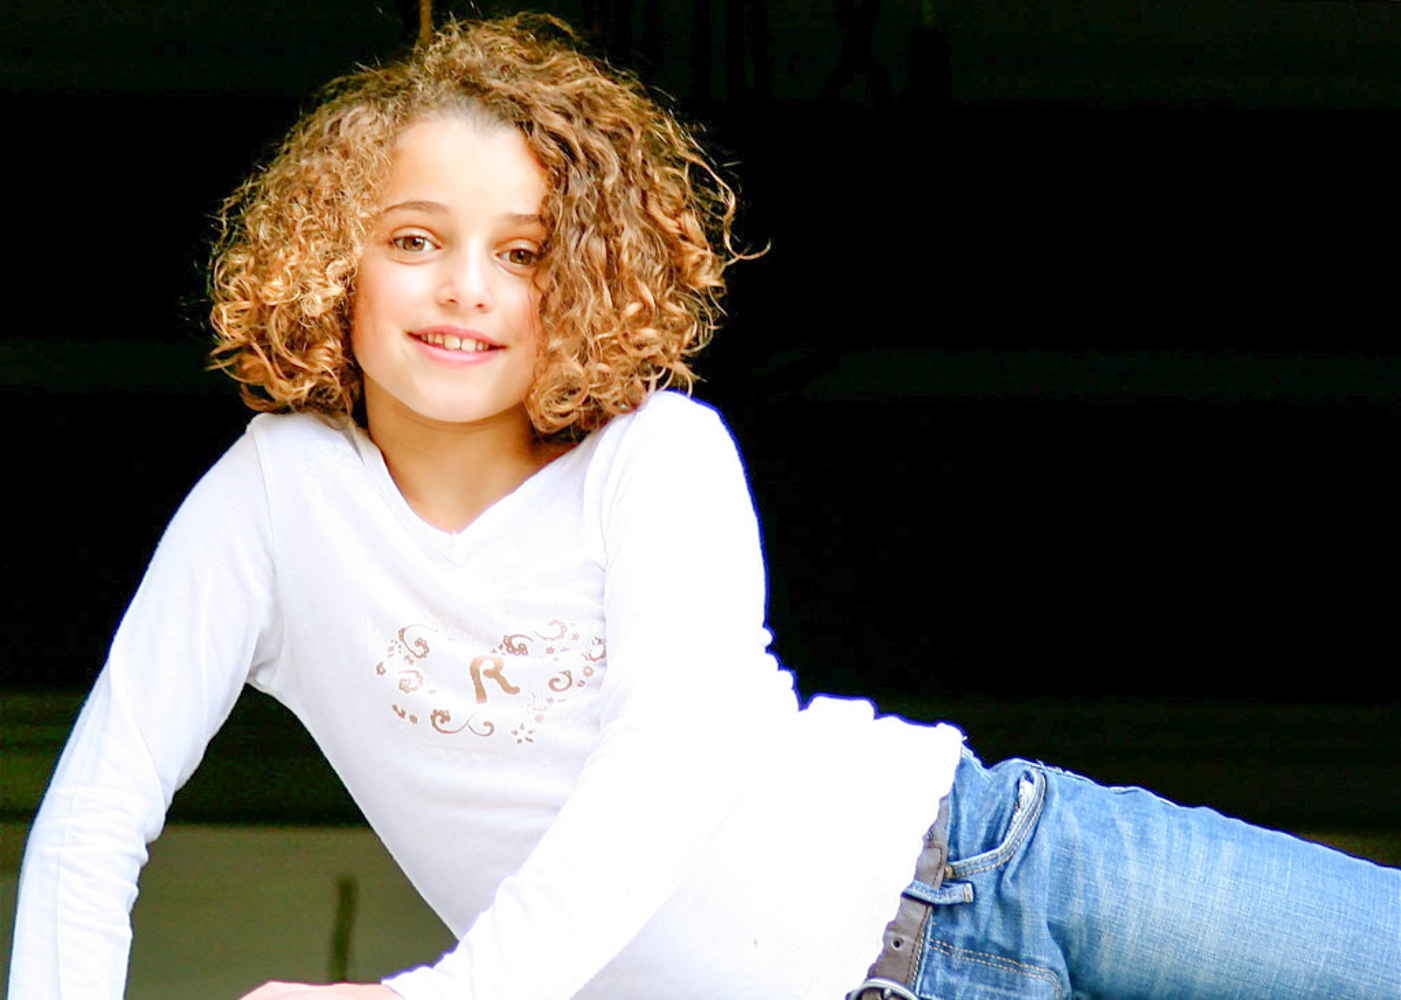 teenage girl with curly brown hair in white long-sleeved t-shirt